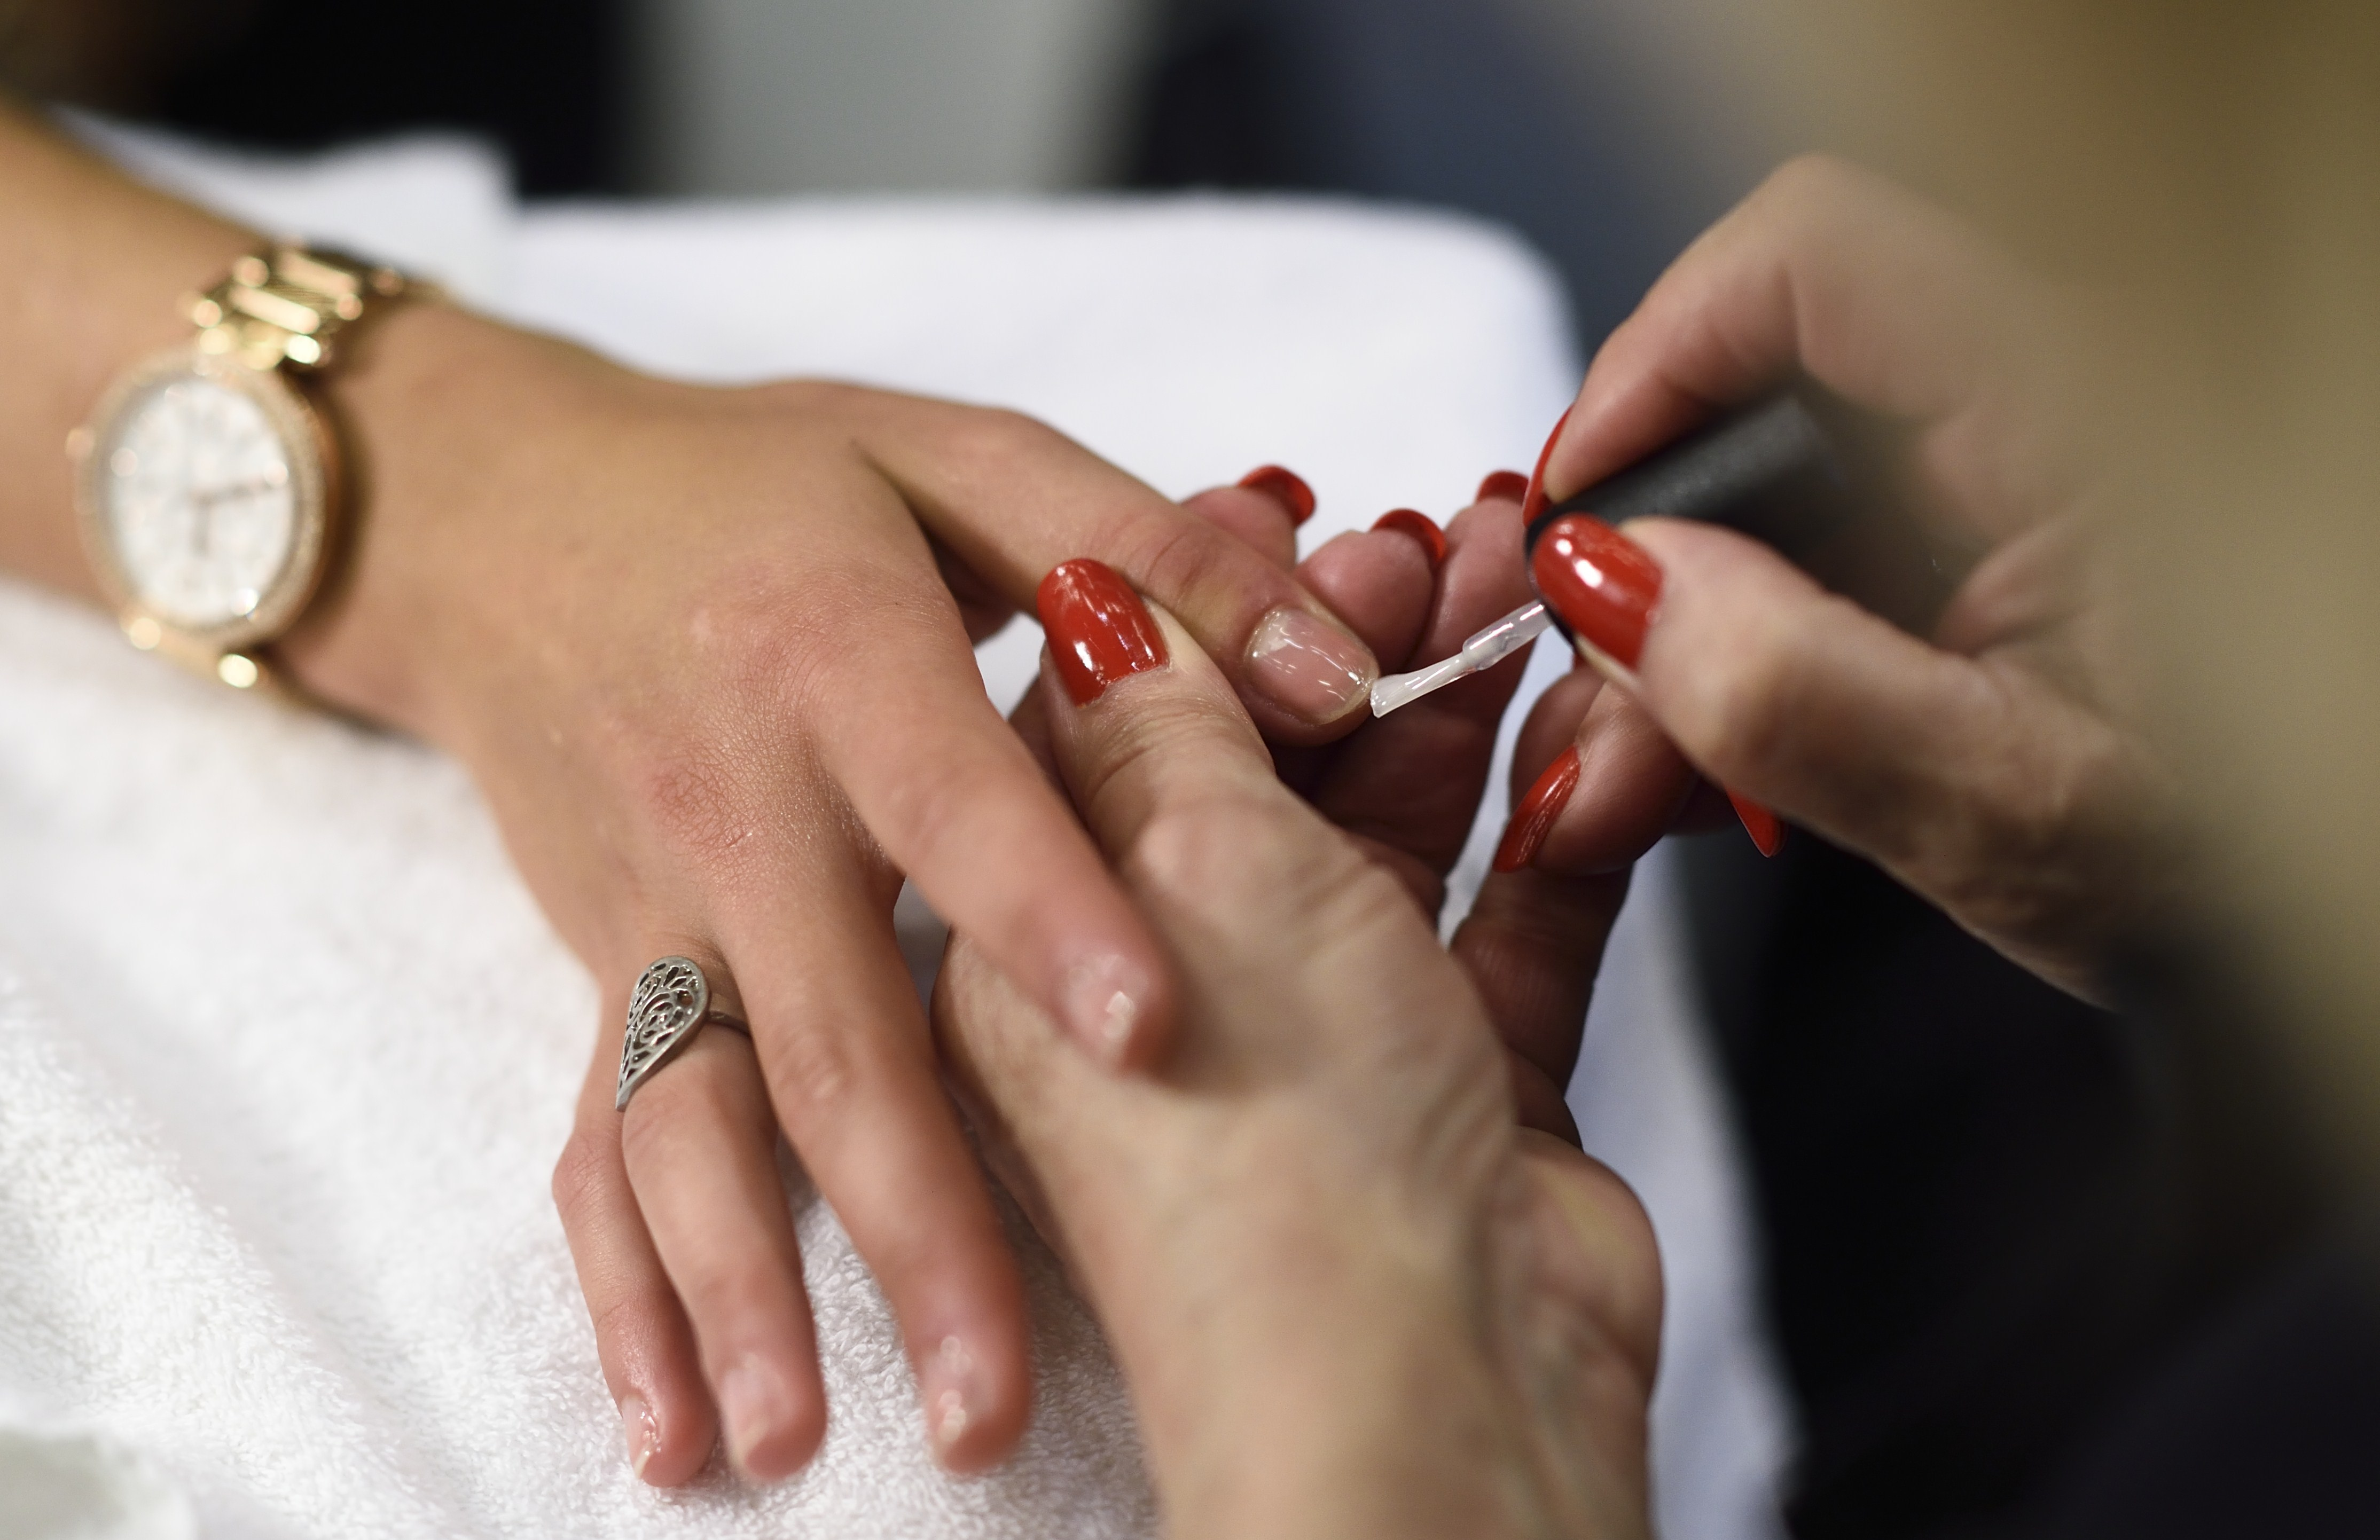 Report Finds Nyc Nail Salon Workers Underpaid Exploited